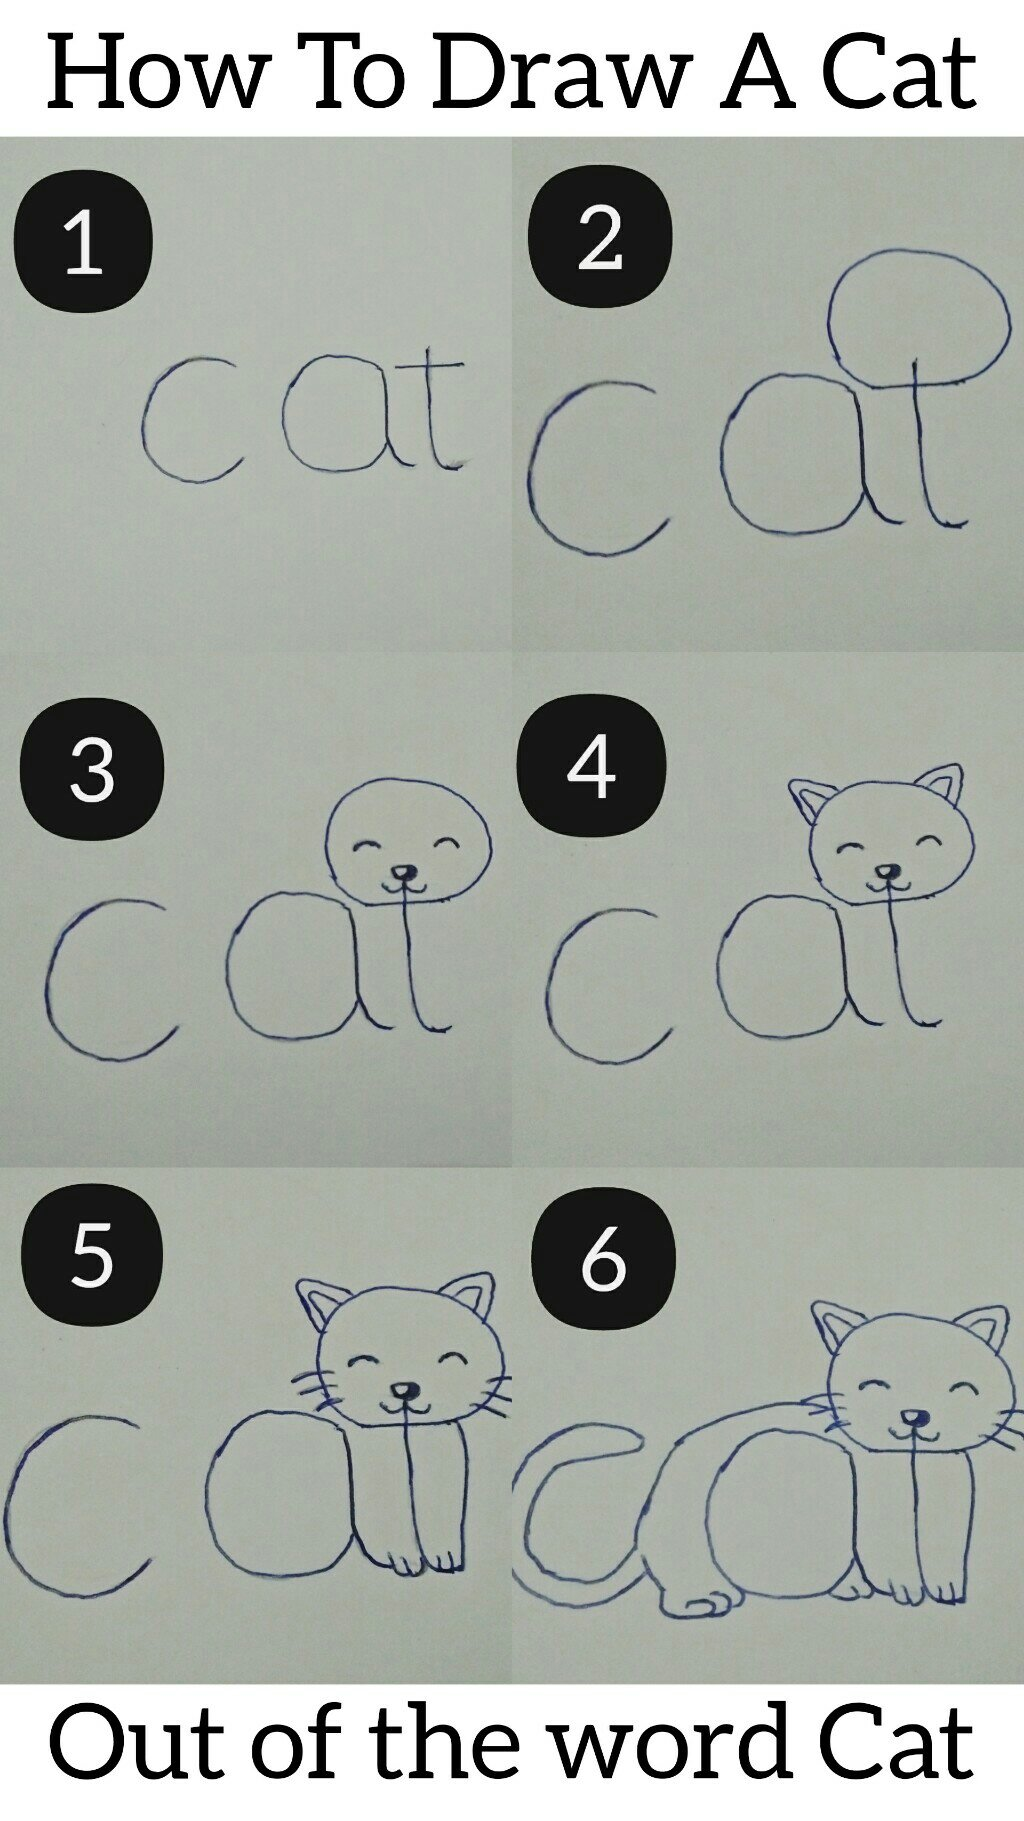 How to draw a cat put of the word cat